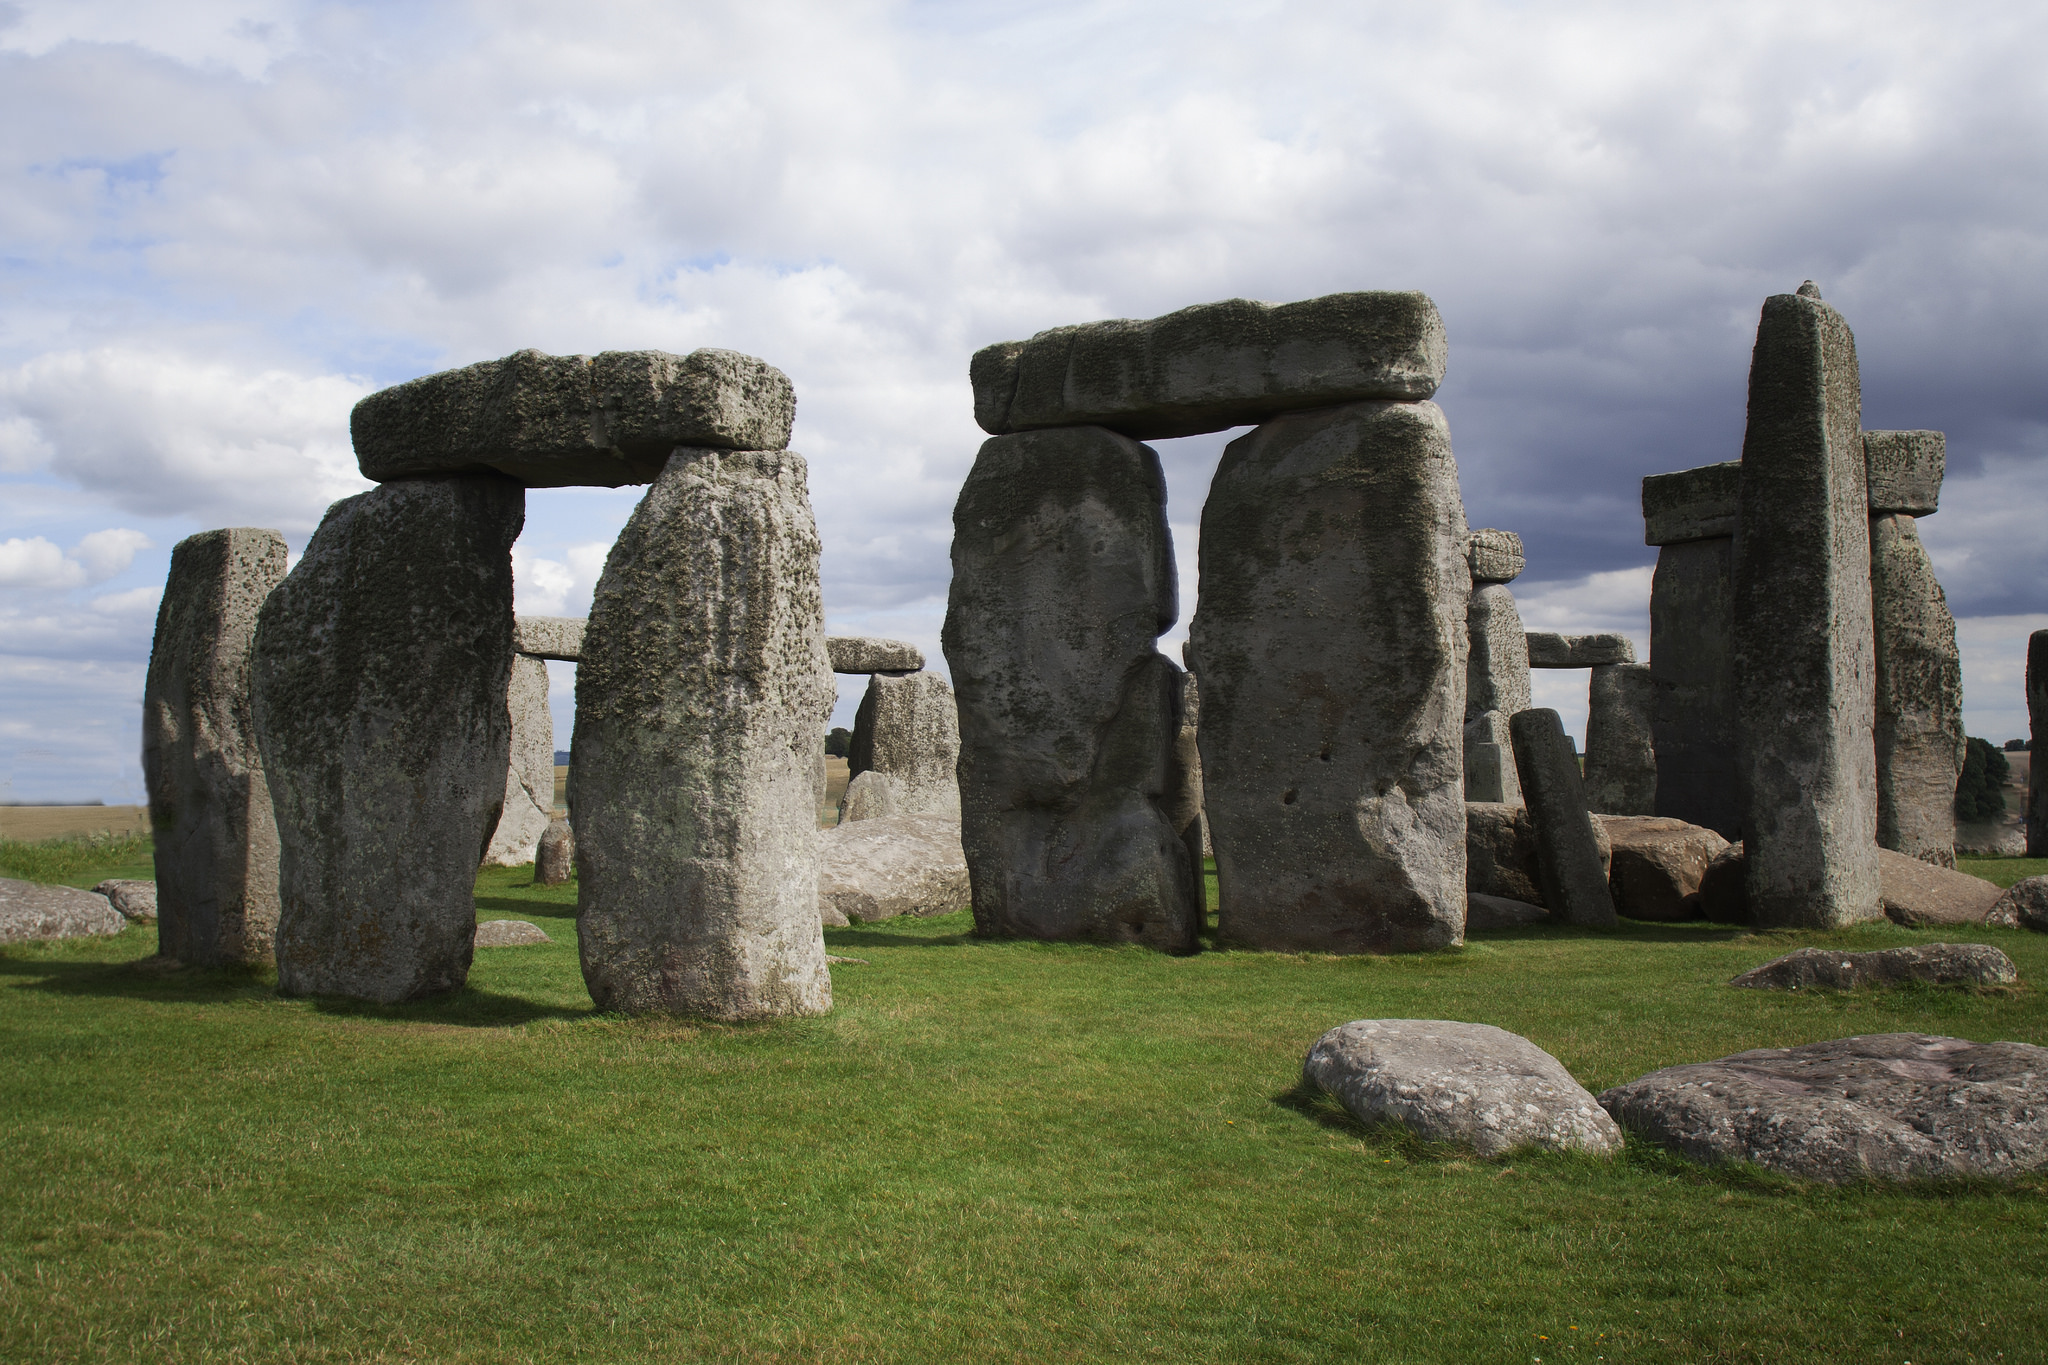 Stonehenge is an essential part of any UK Tour ... photo by CC user francescovolpi on Flickr